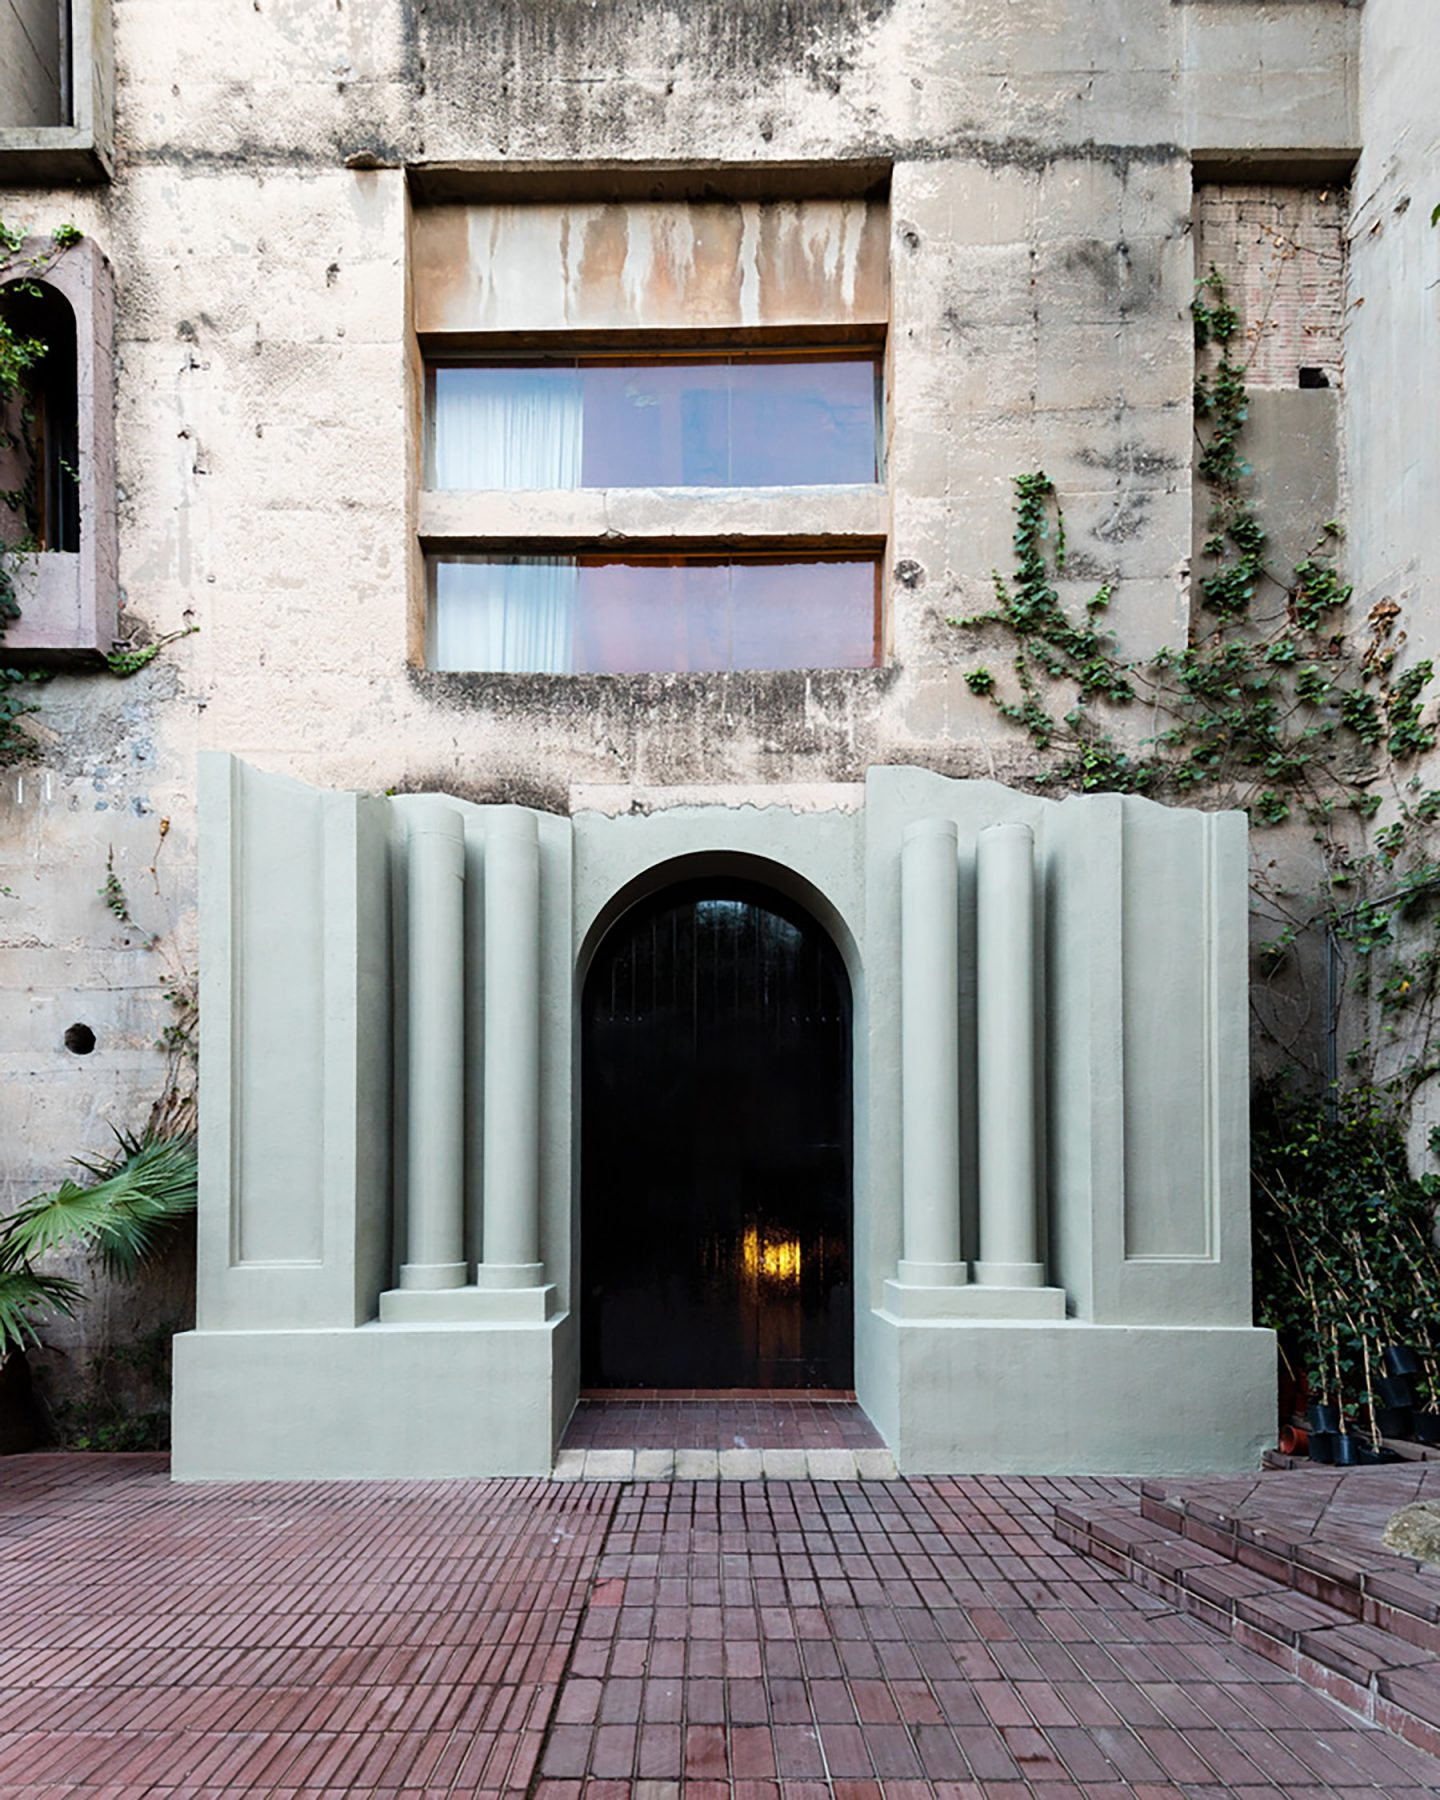 Ricardo Bofill's Dusky Pink Cement Factory